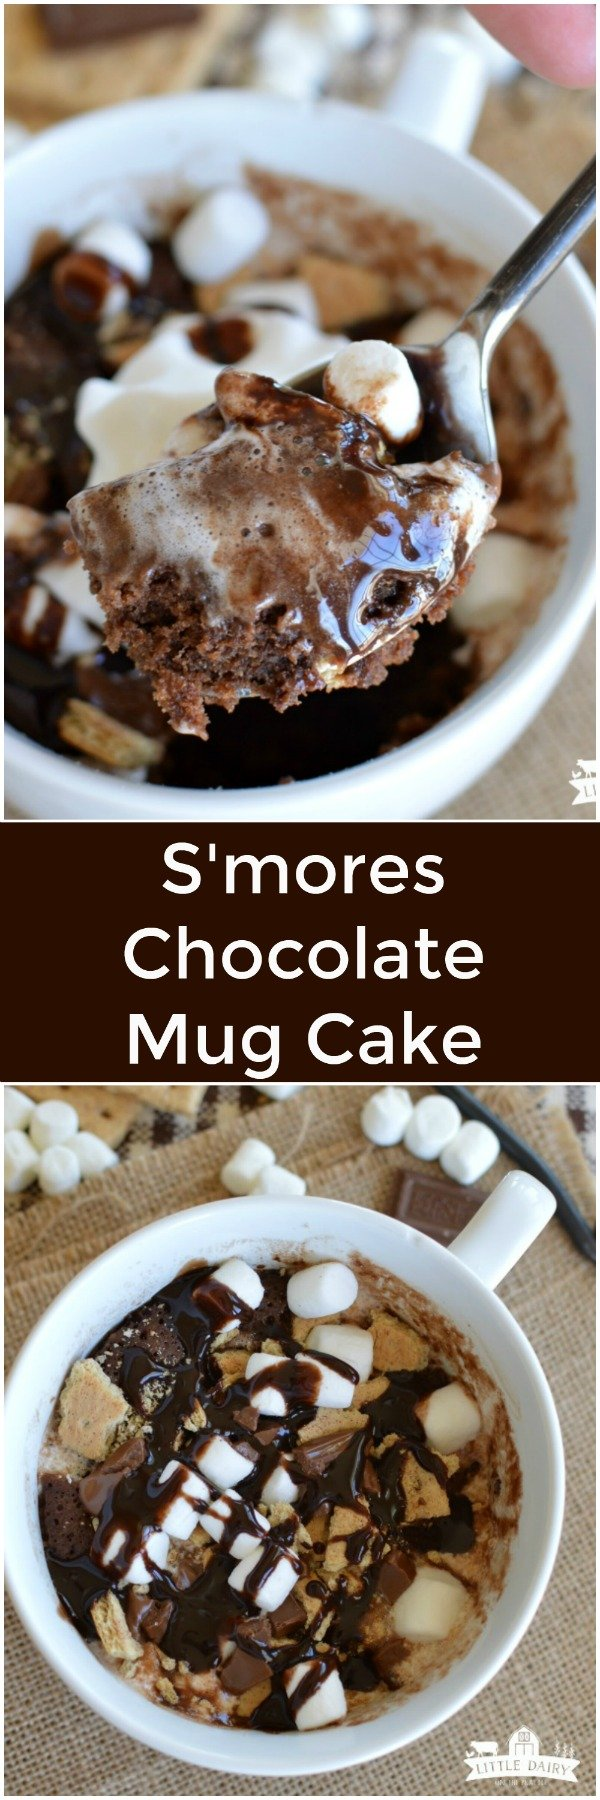 S Mores Chocolate Mug Cake Little Dairy On The Prairie